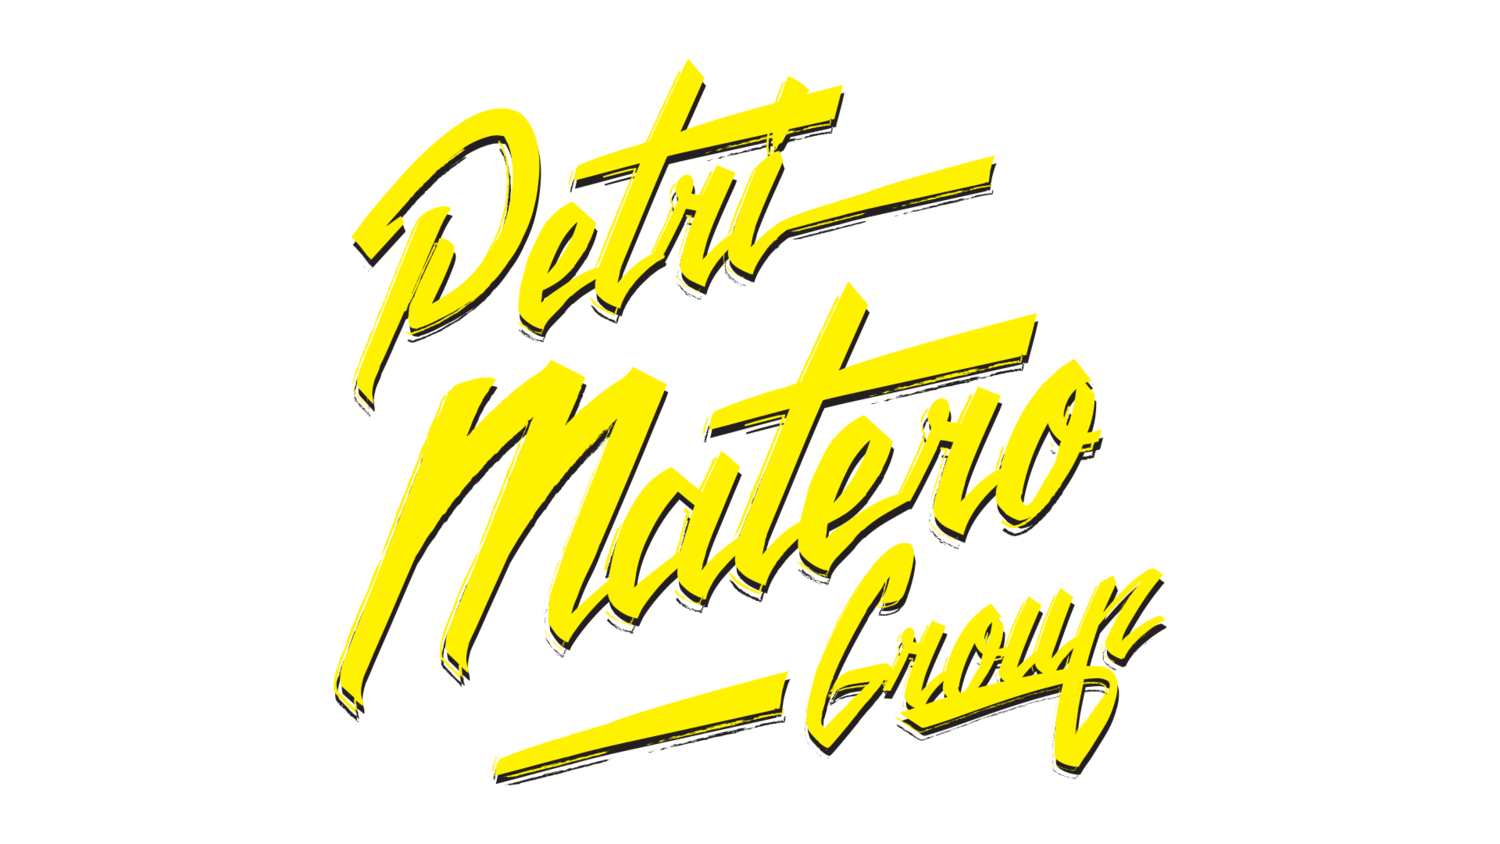 Petri Matero Group